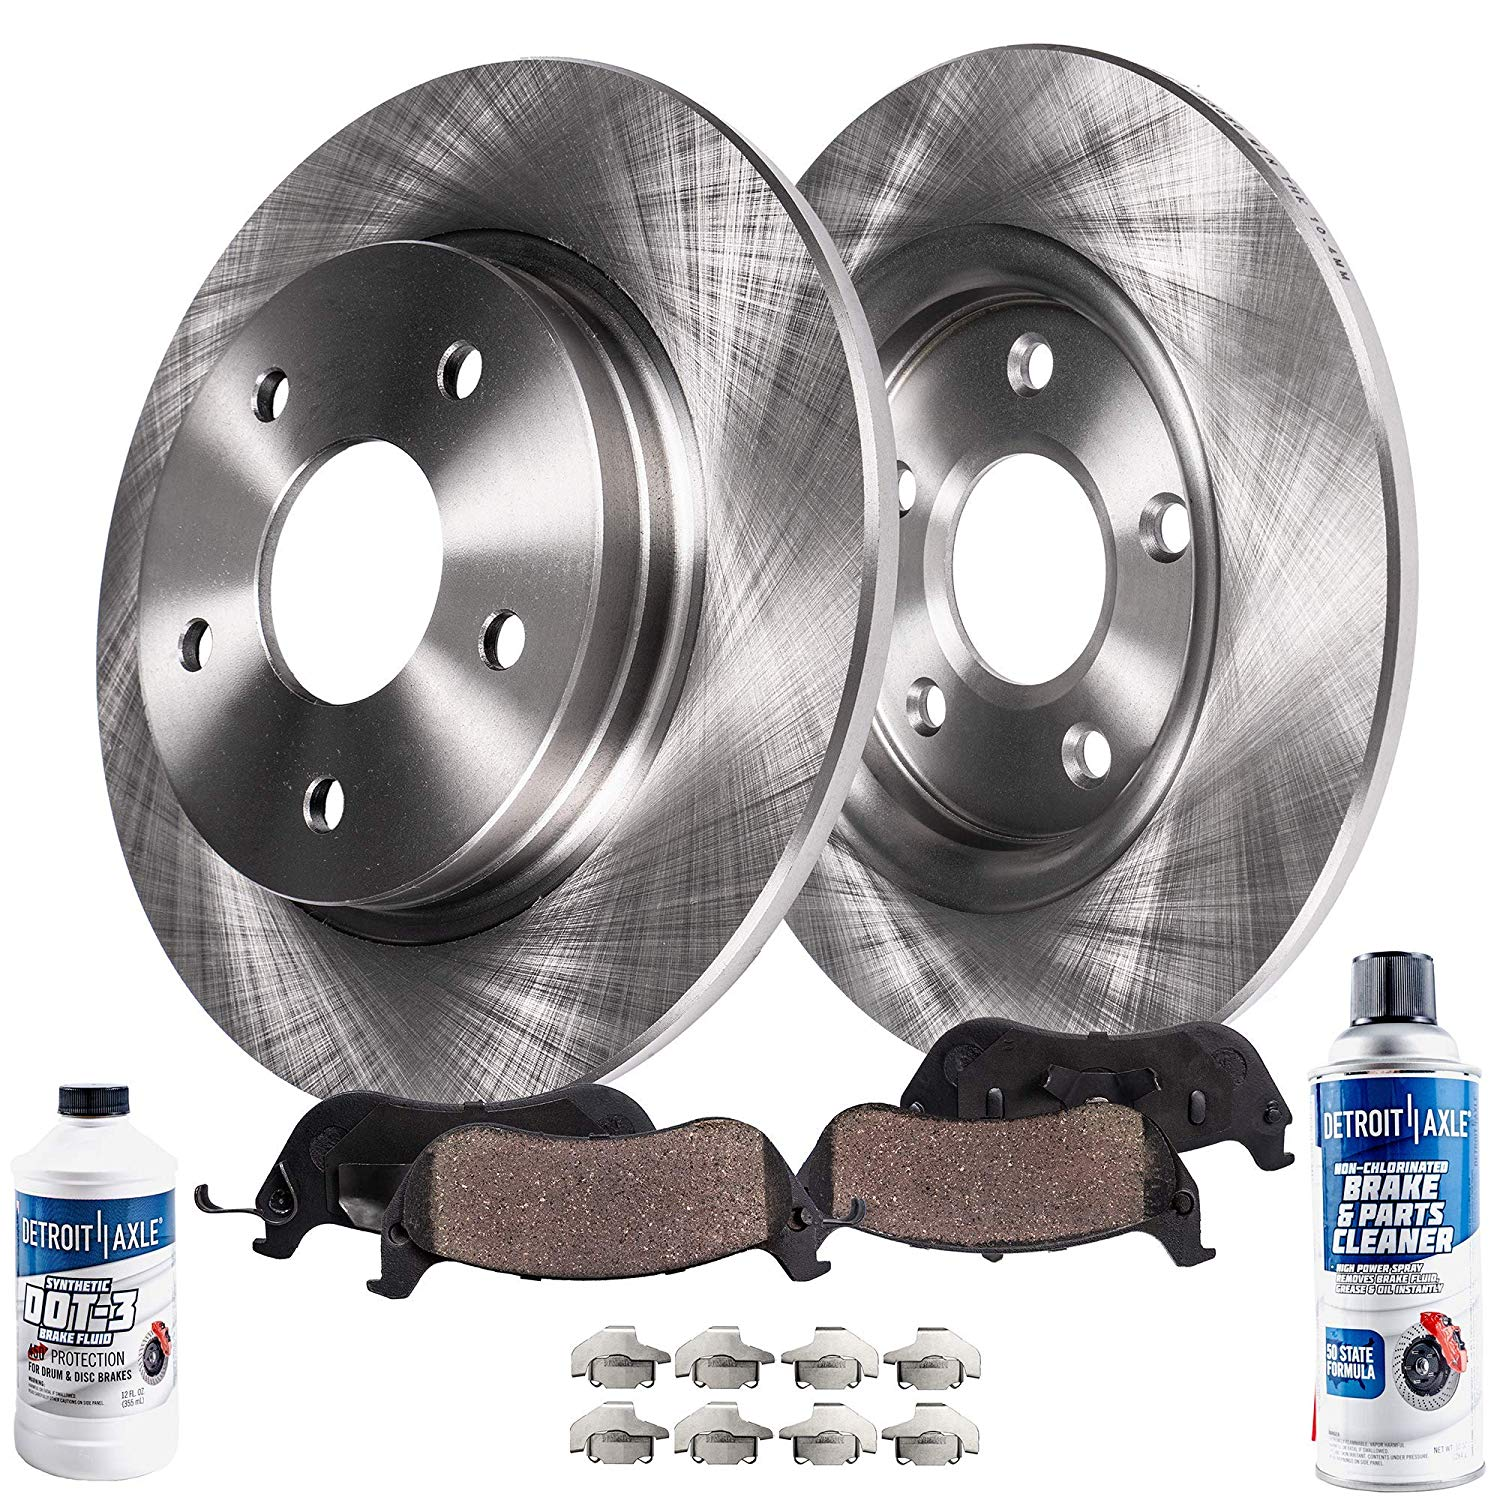 Rear Brake Rotors Ceramic Pads Kit For Town /& Countr Dodge Grand Caravan Journey